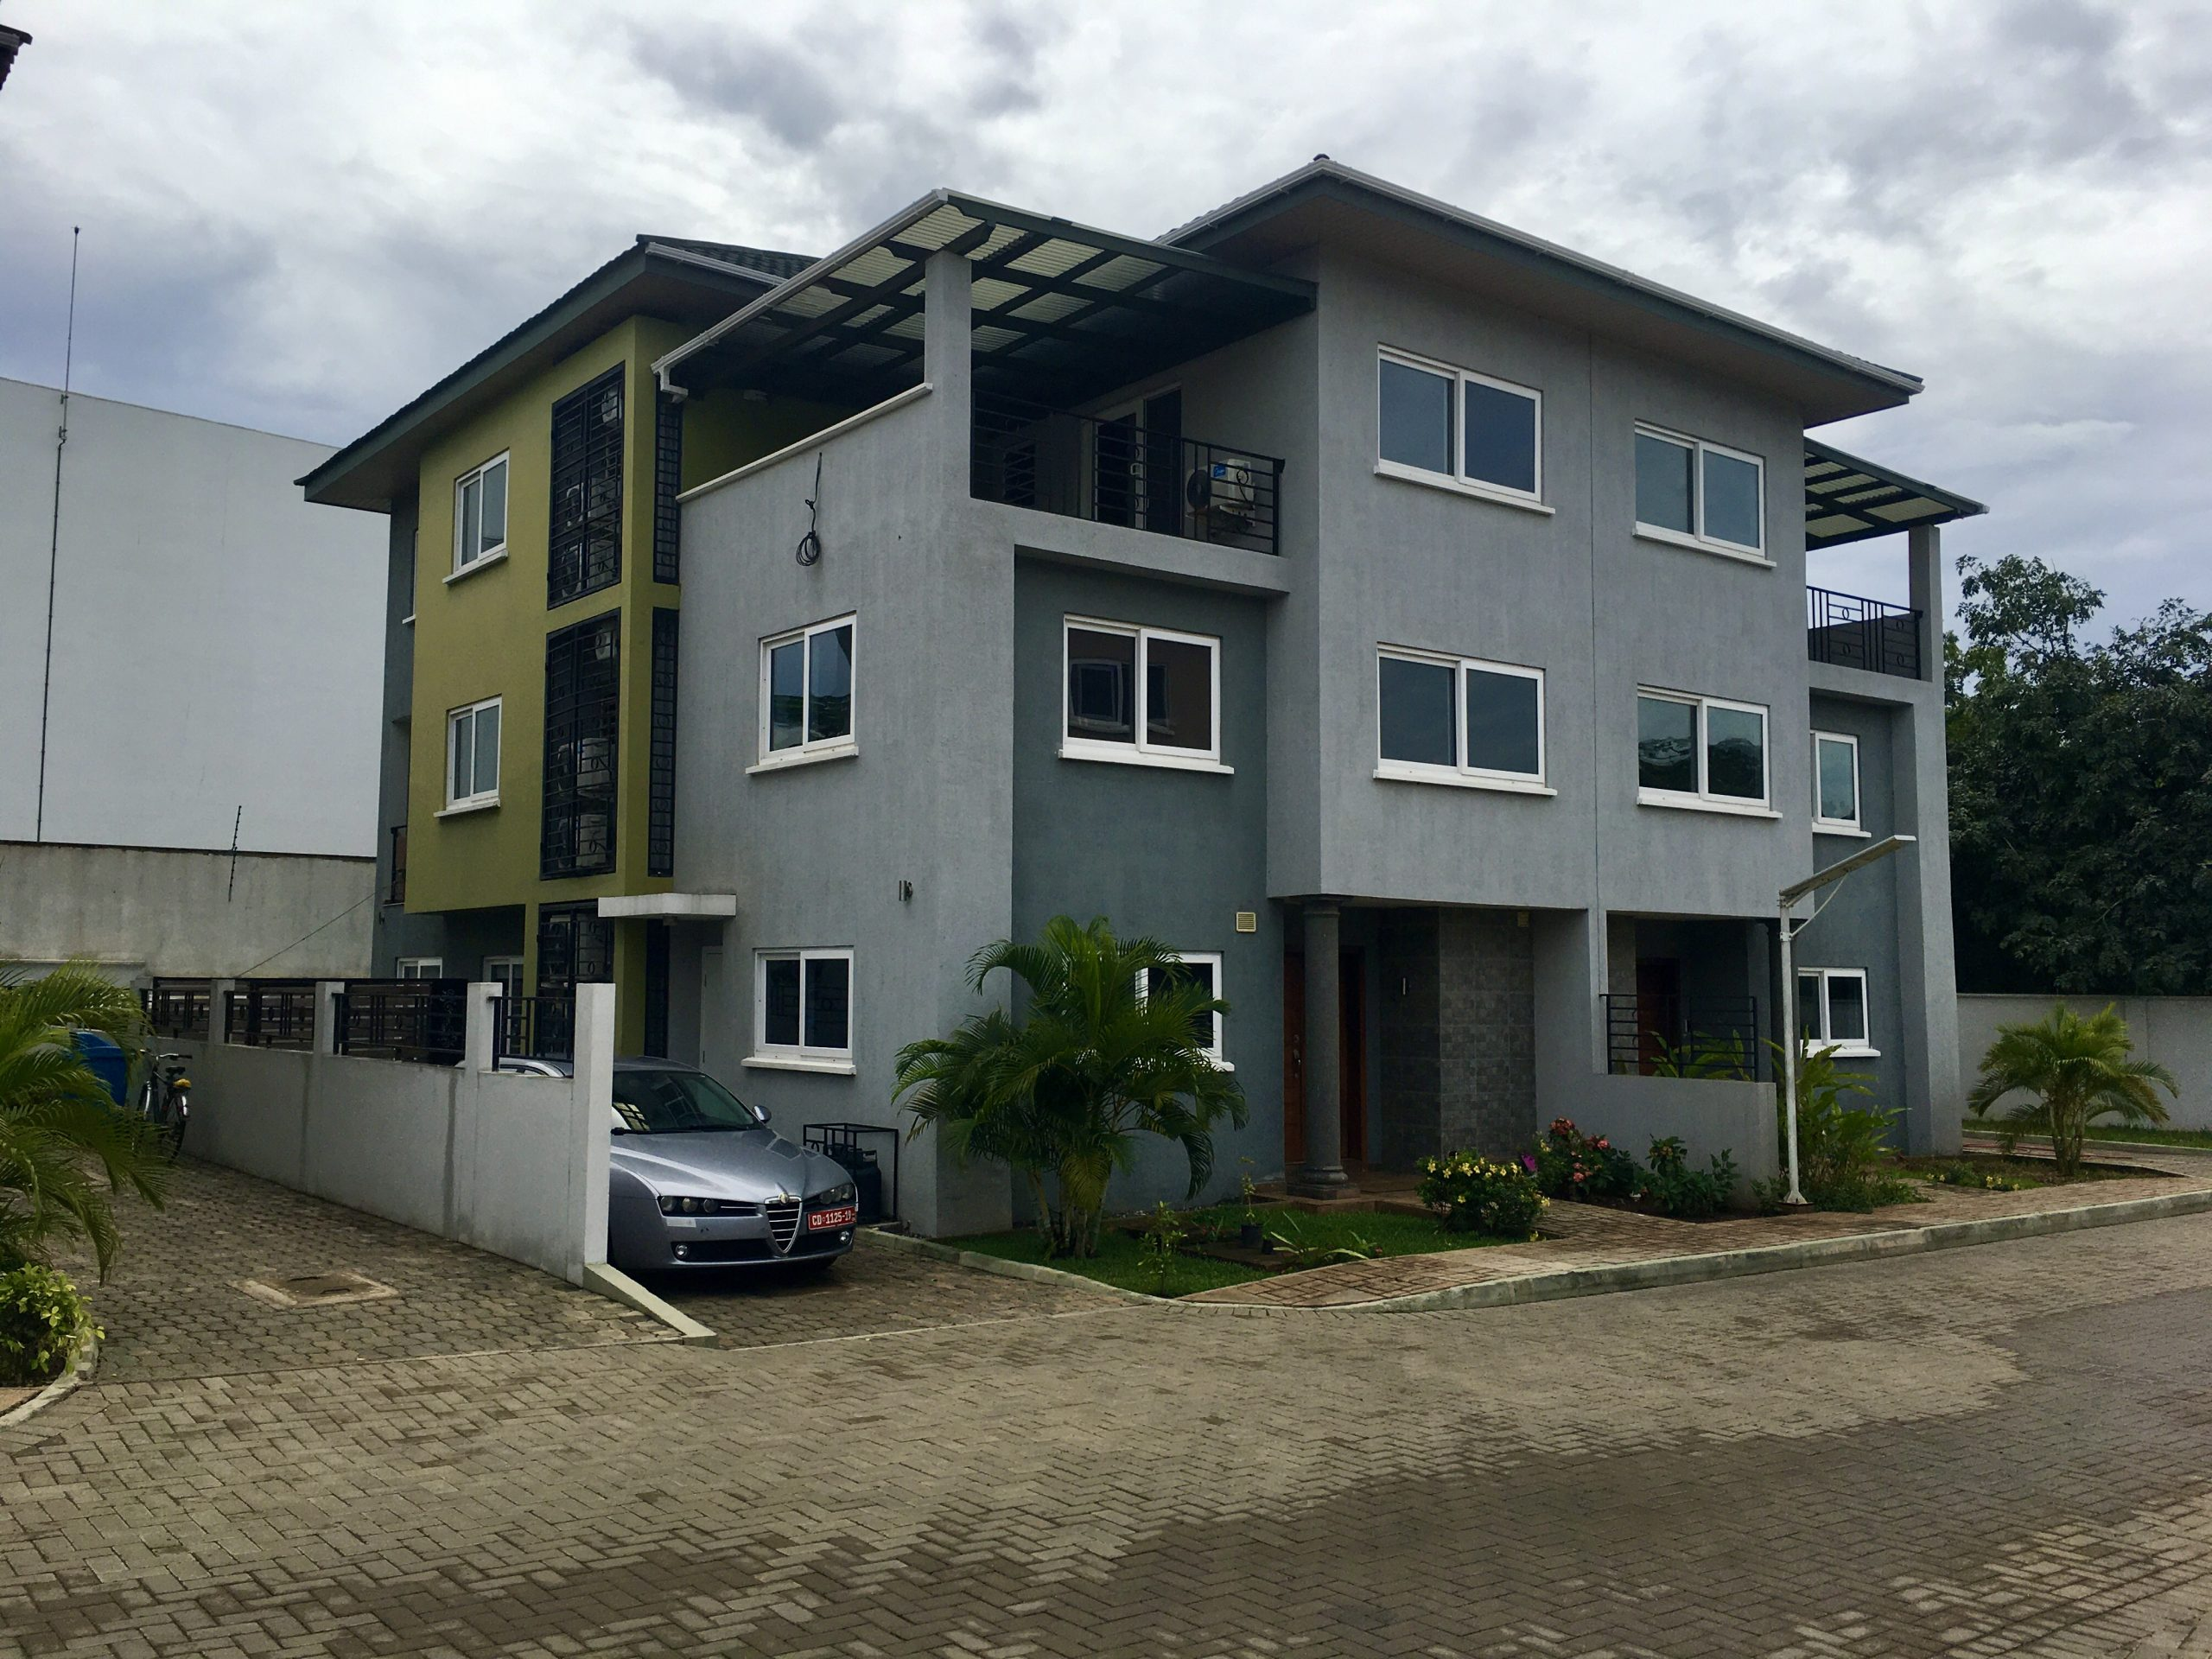 4 Bedroom Townhouses For Rent In Cantonments